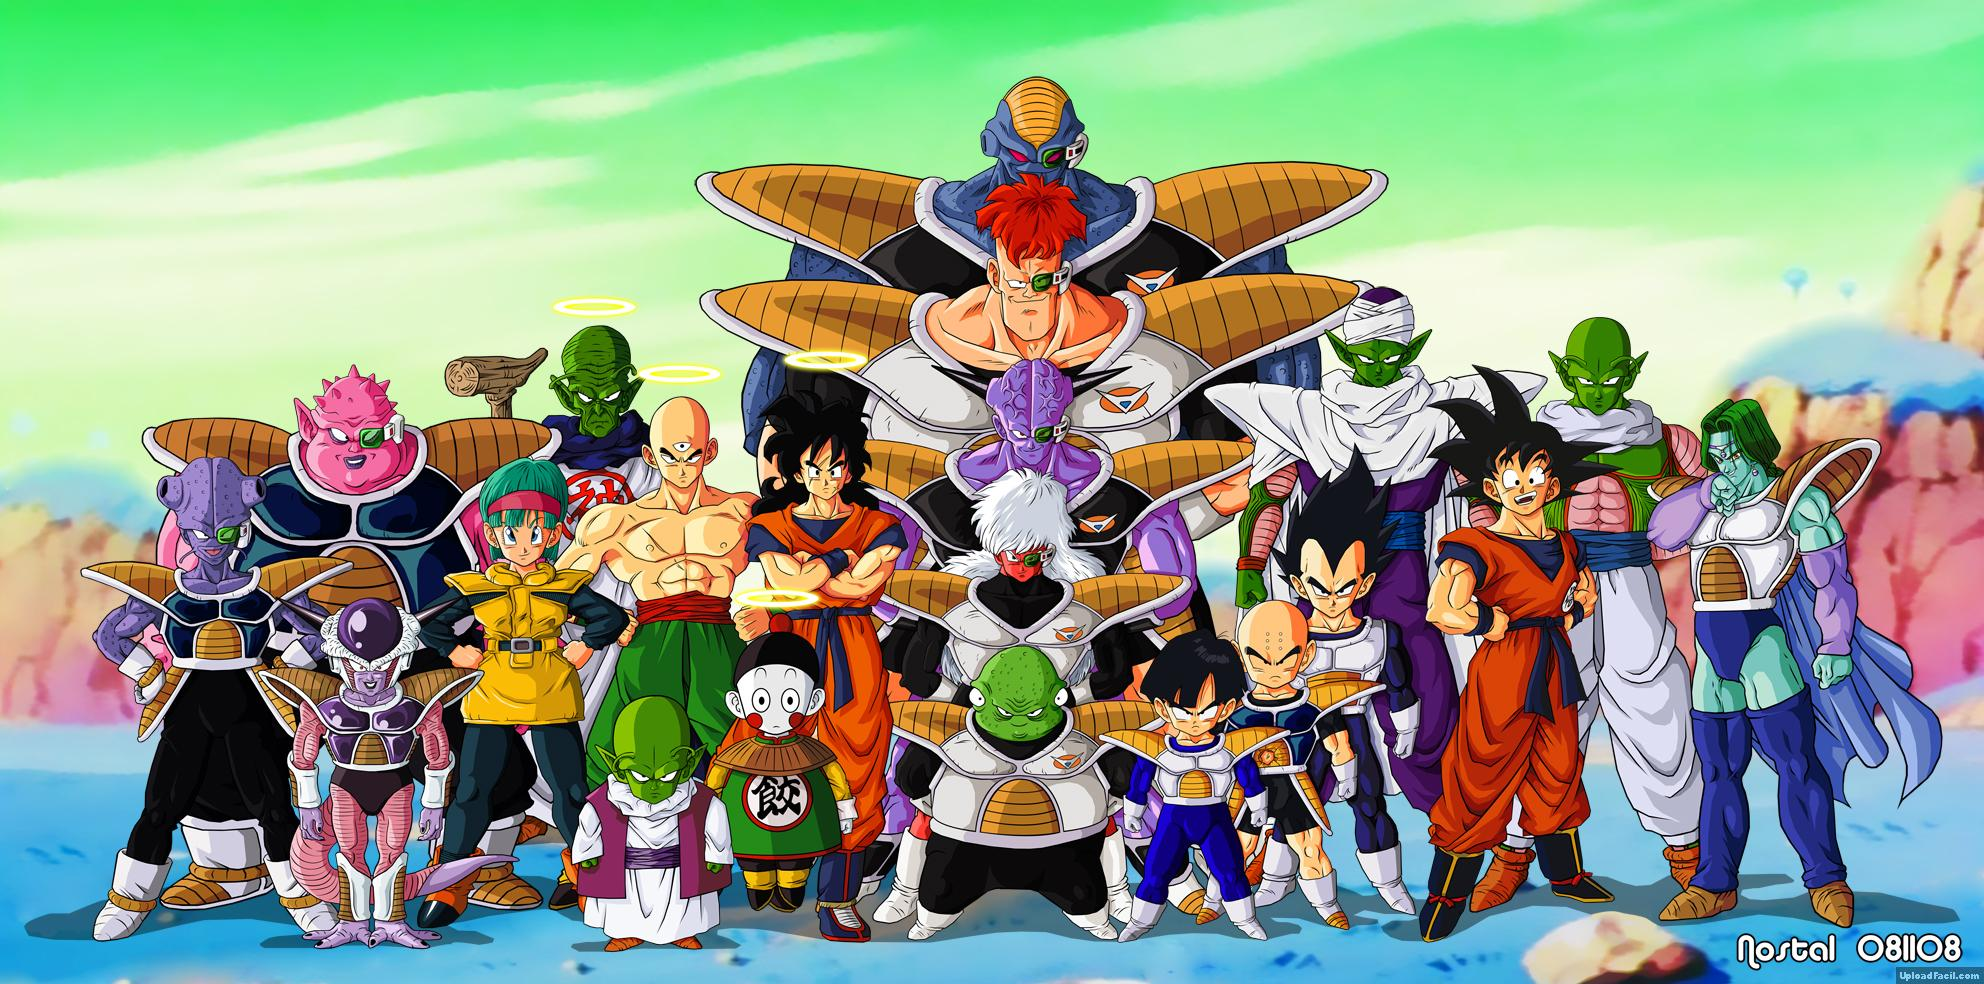 Z Characters Anime : Dragon ball z characters yamcha piccolo chiazou trunks